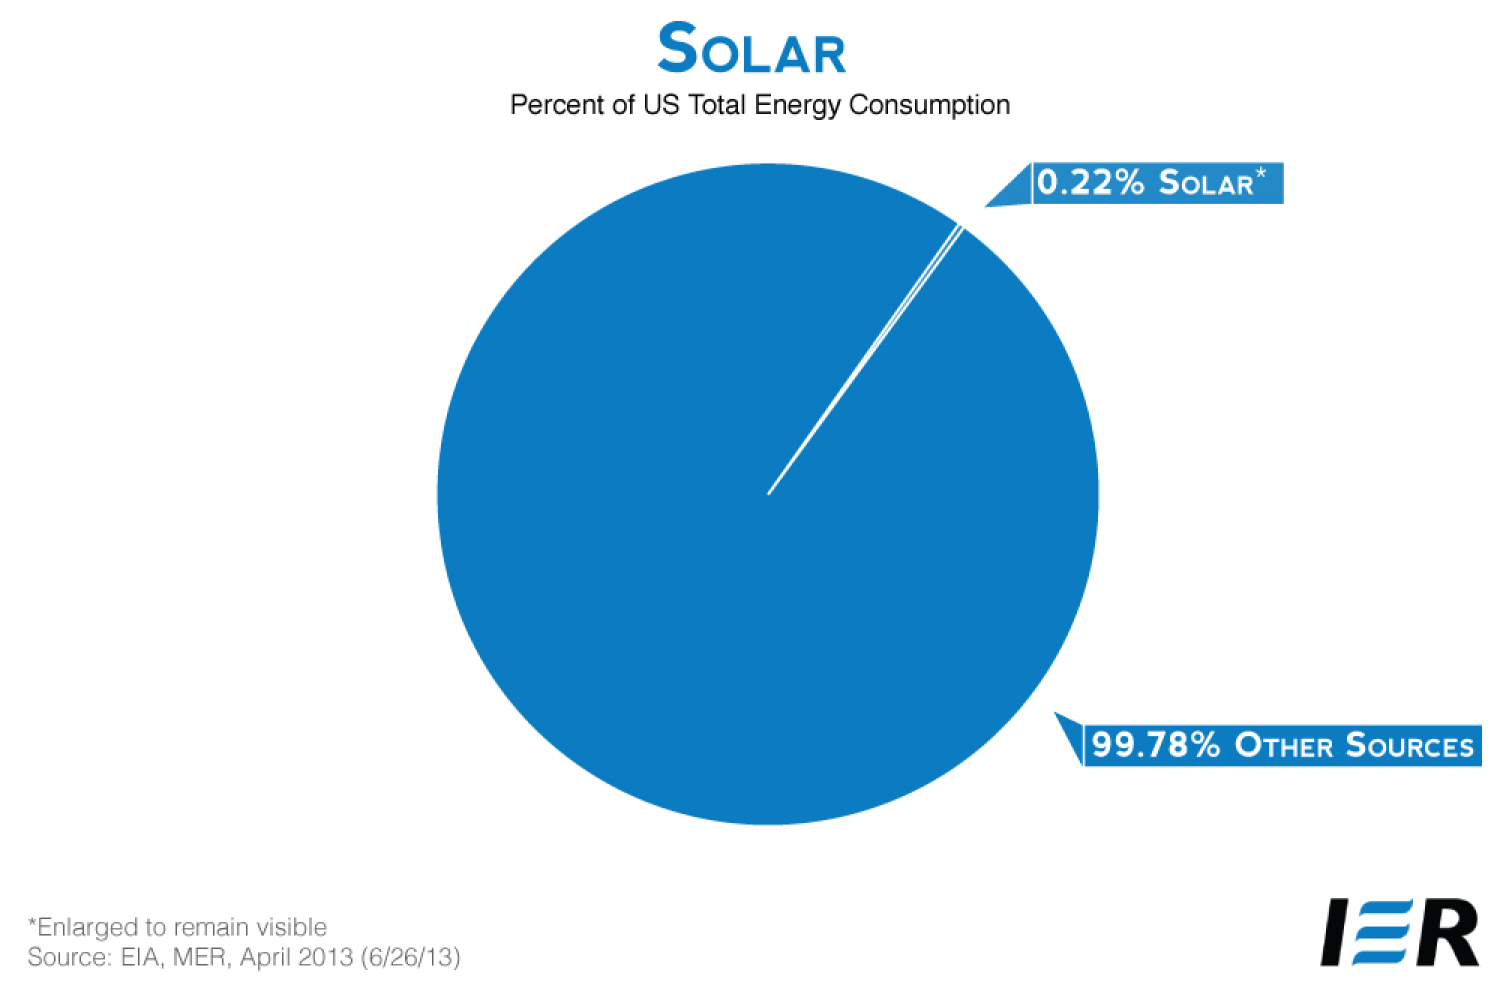 Percent of US Total Energy Consumption Infographic